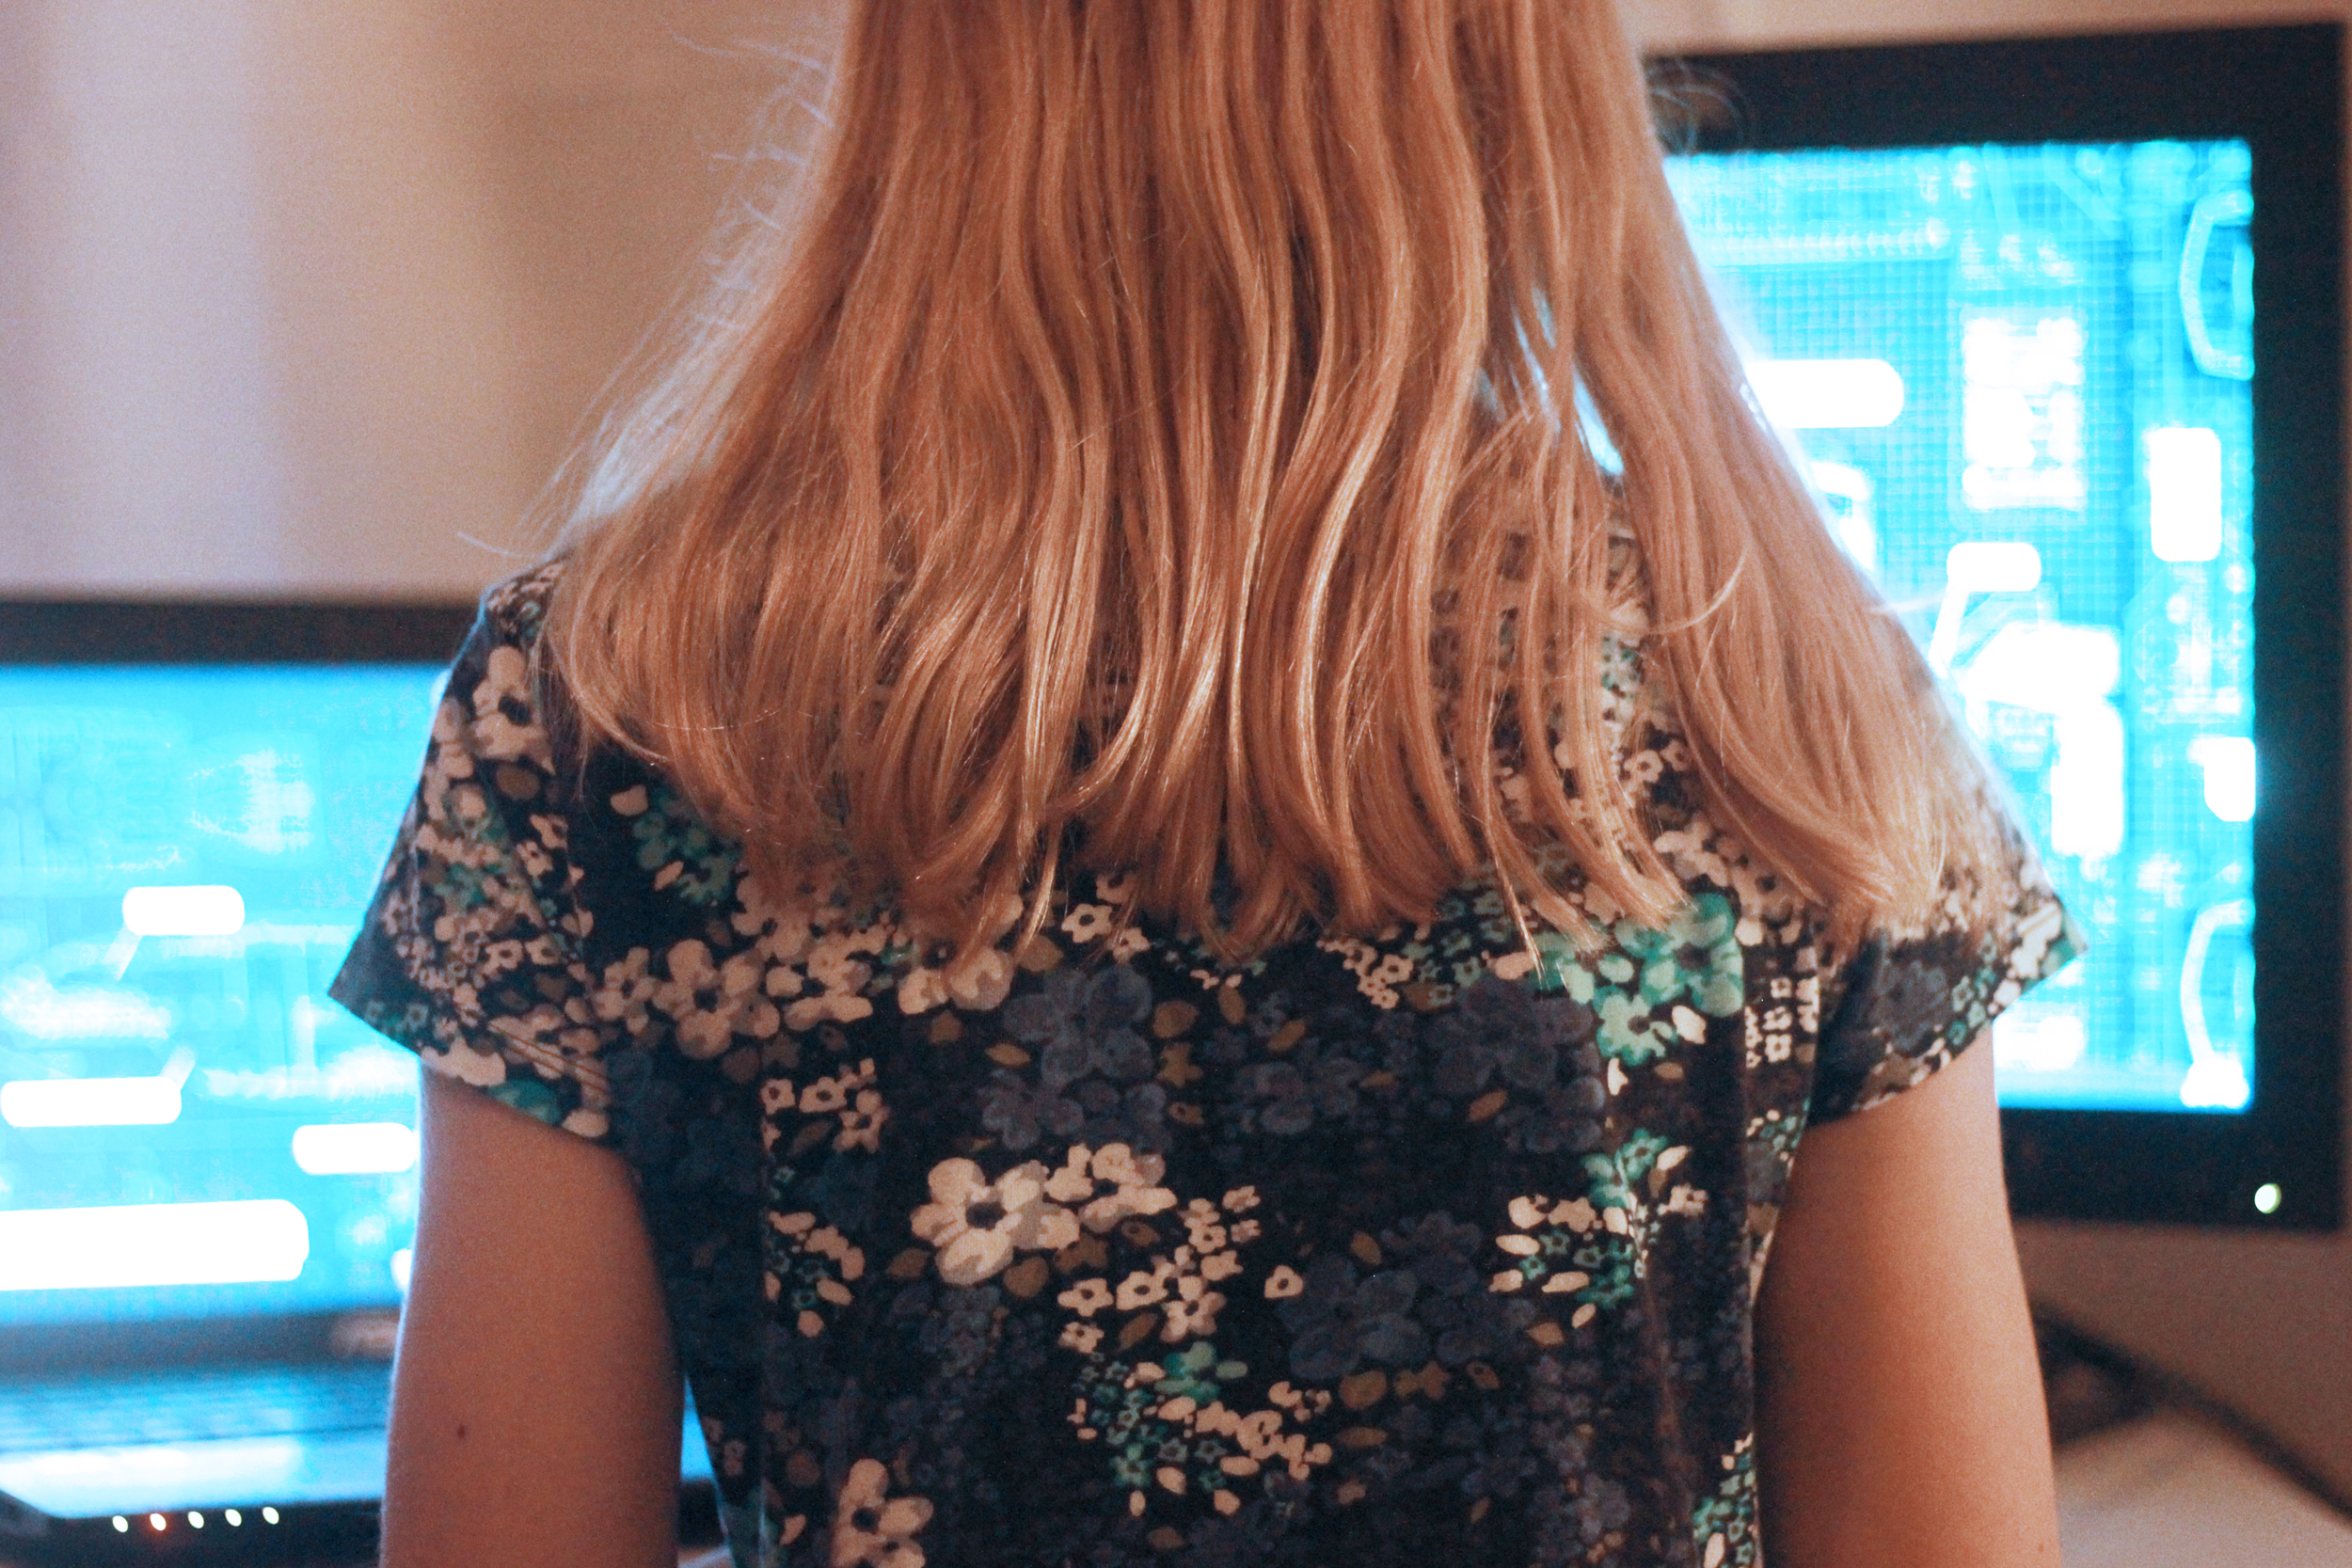 girl standing in front of computer screens